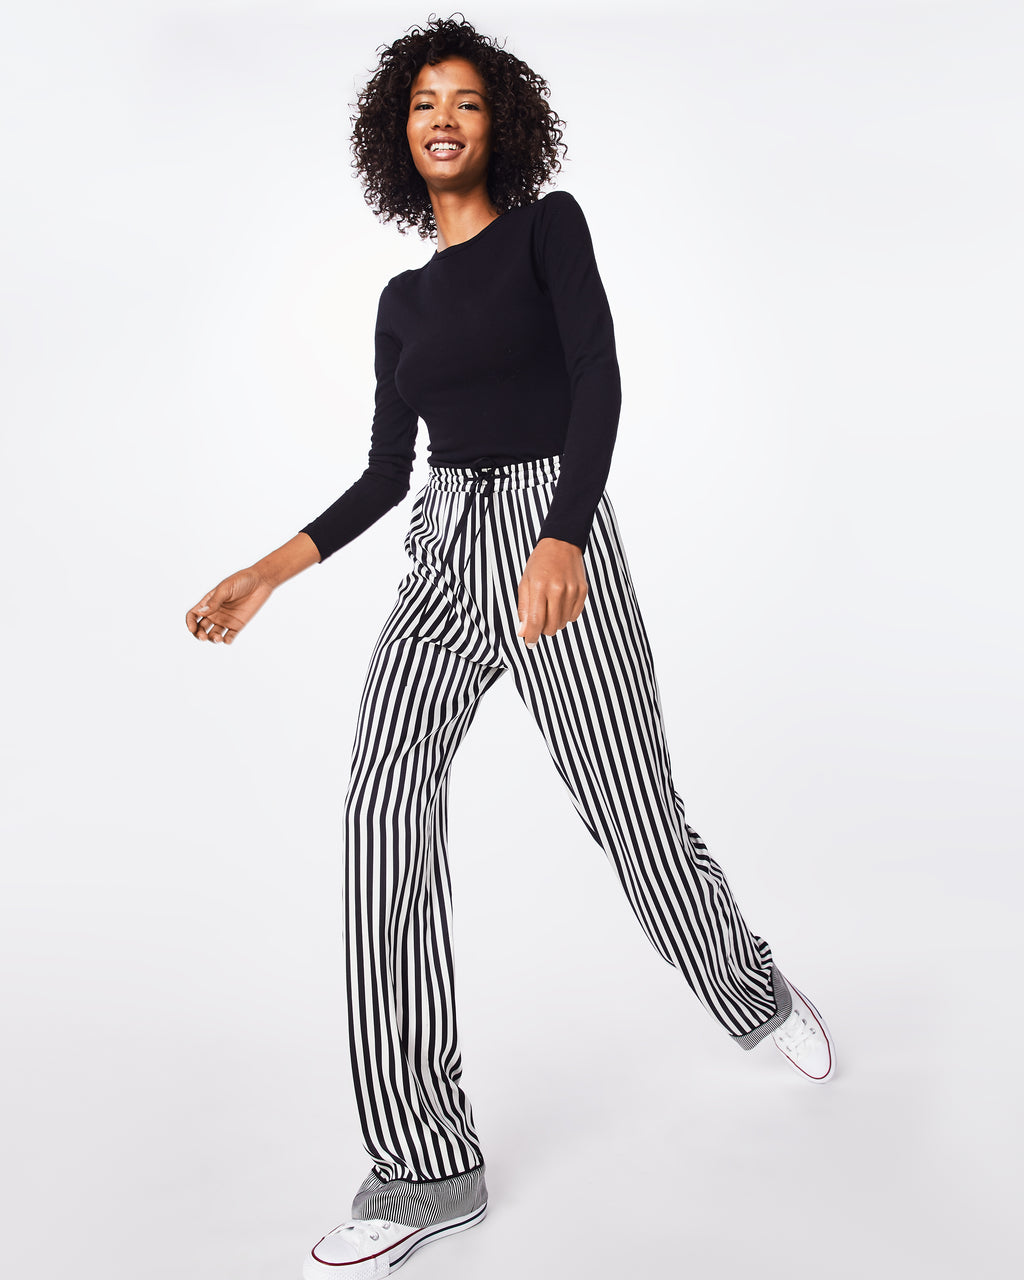 BH10445 - PAJAMA STRIPE DRAWSTRING PANT - bottoms - pants - For when you want to be comfy, but still cool. These black and white striped trouser pants are silky smooth and feature an elastic waistband and drawstring. Unlined.